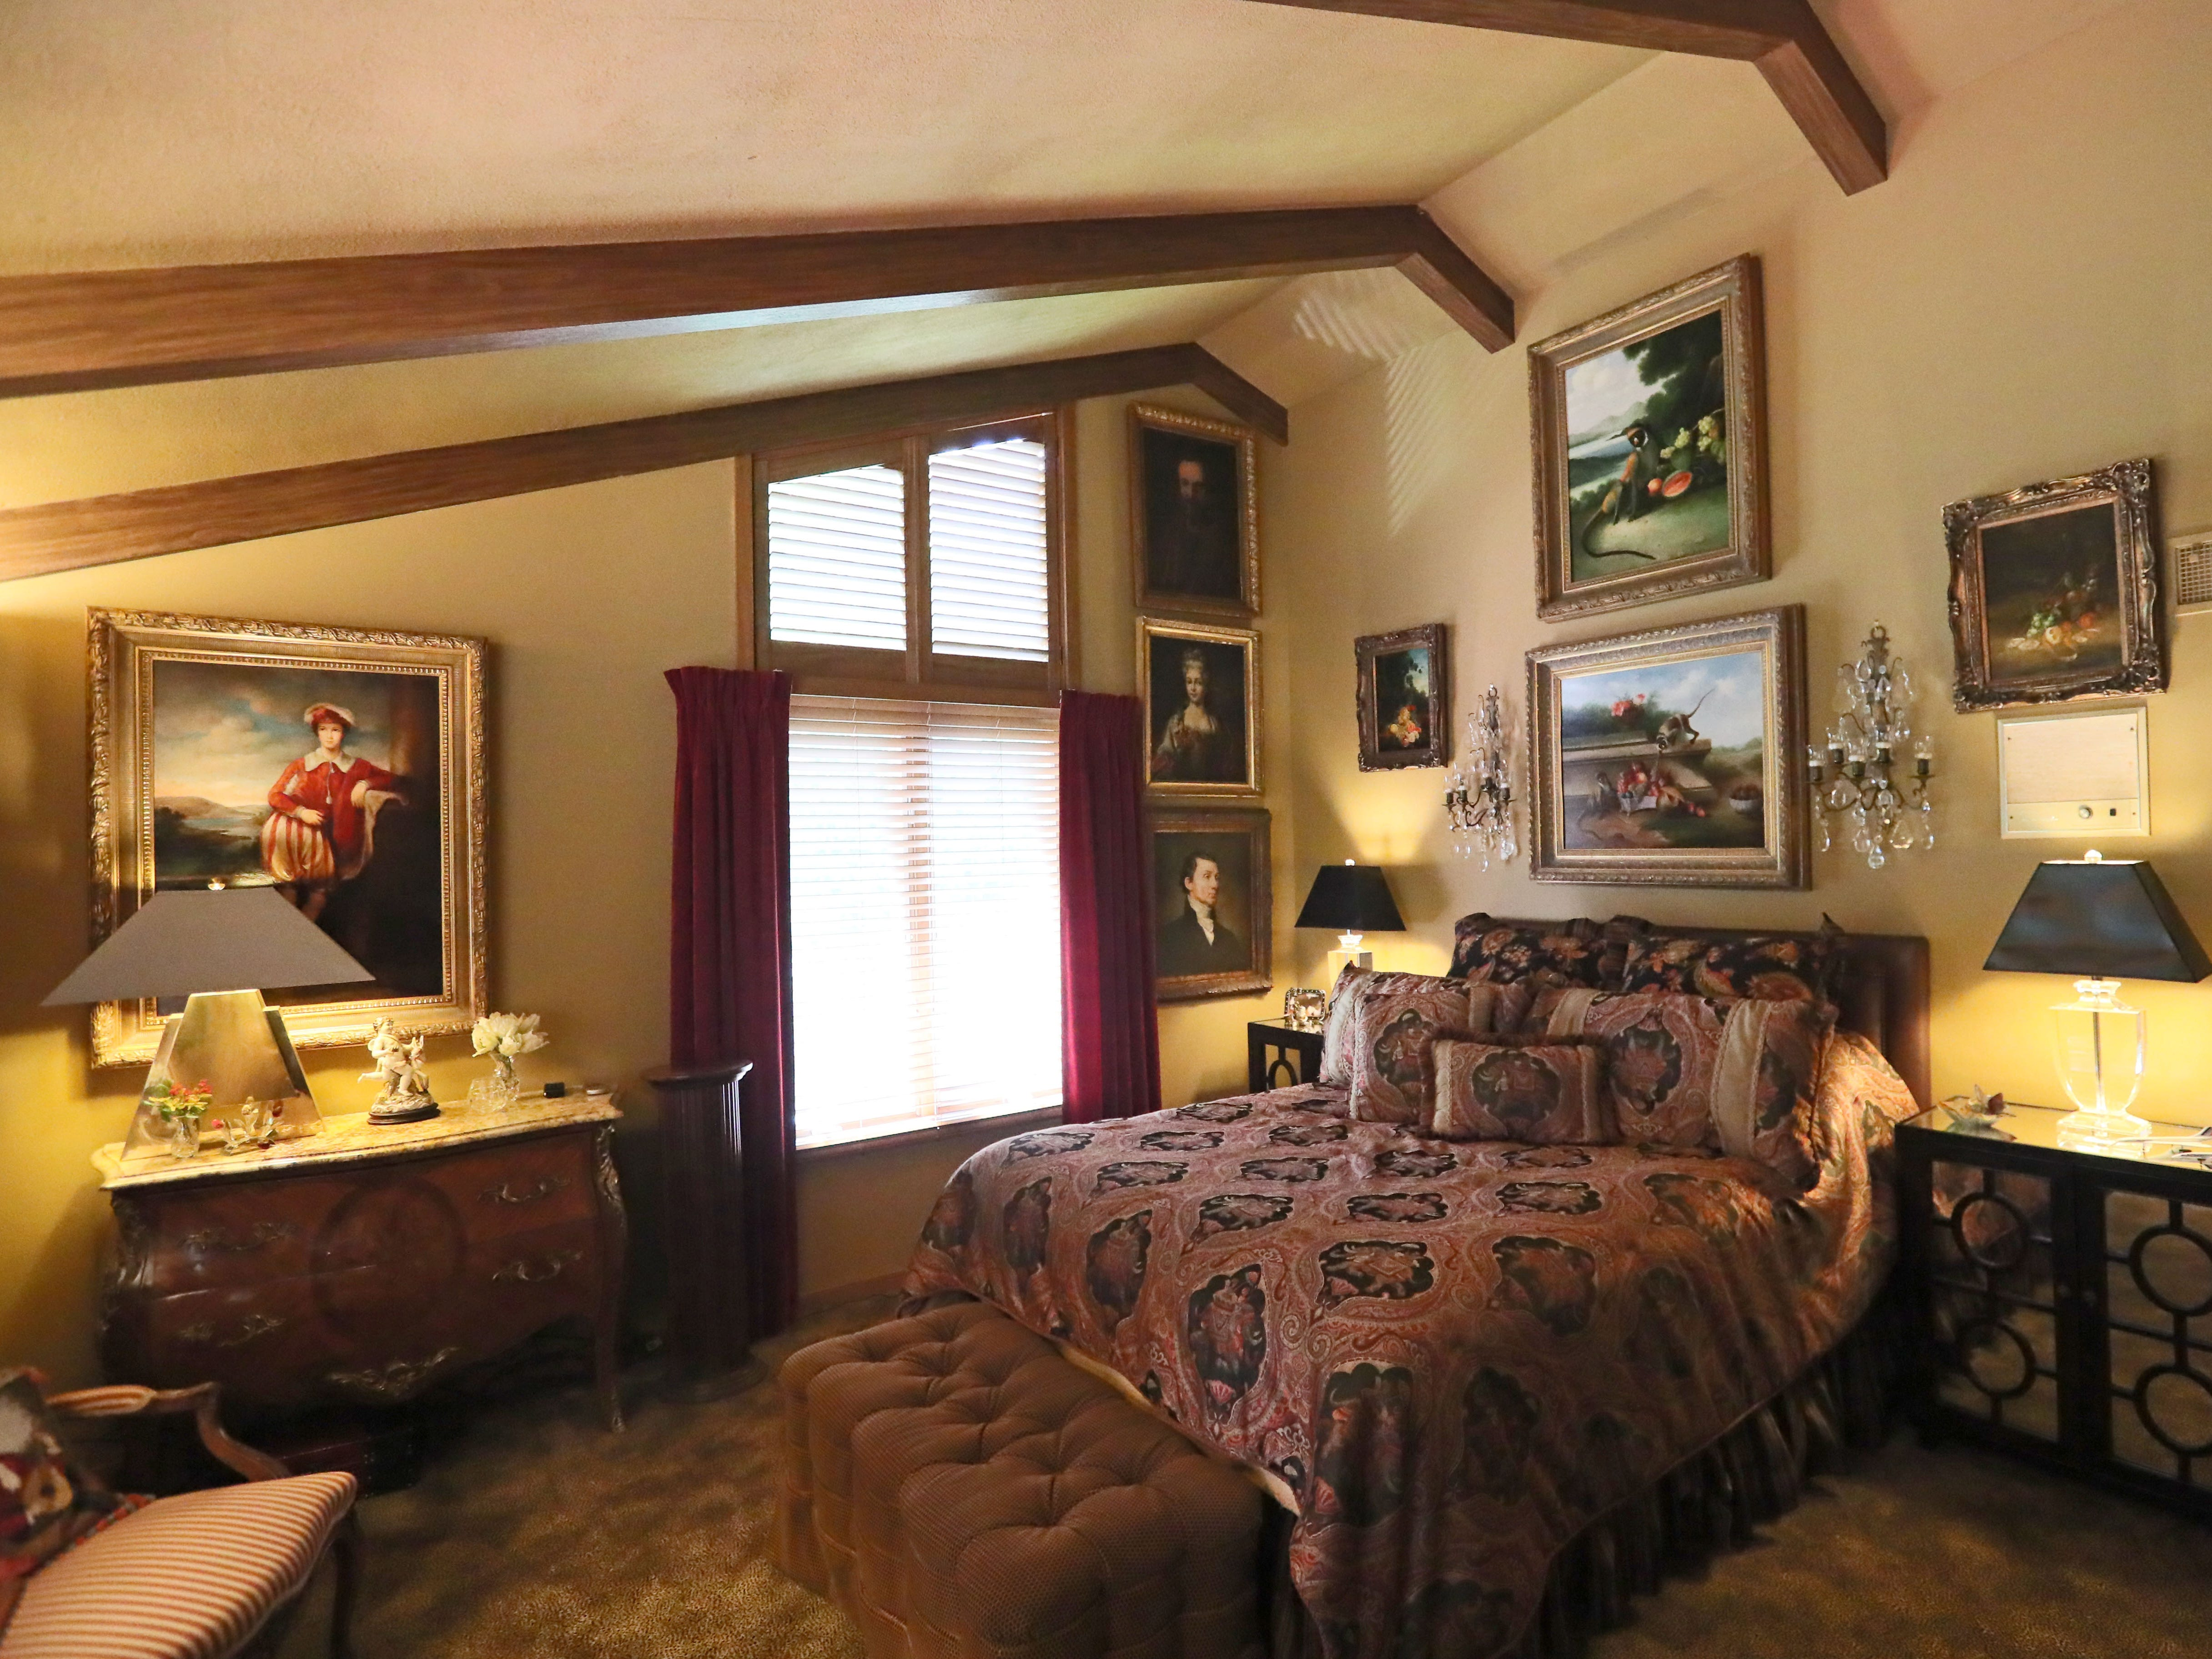 While the living room has primarily more modern art, the other rooms such as this guest bedroom have older oil paintings.